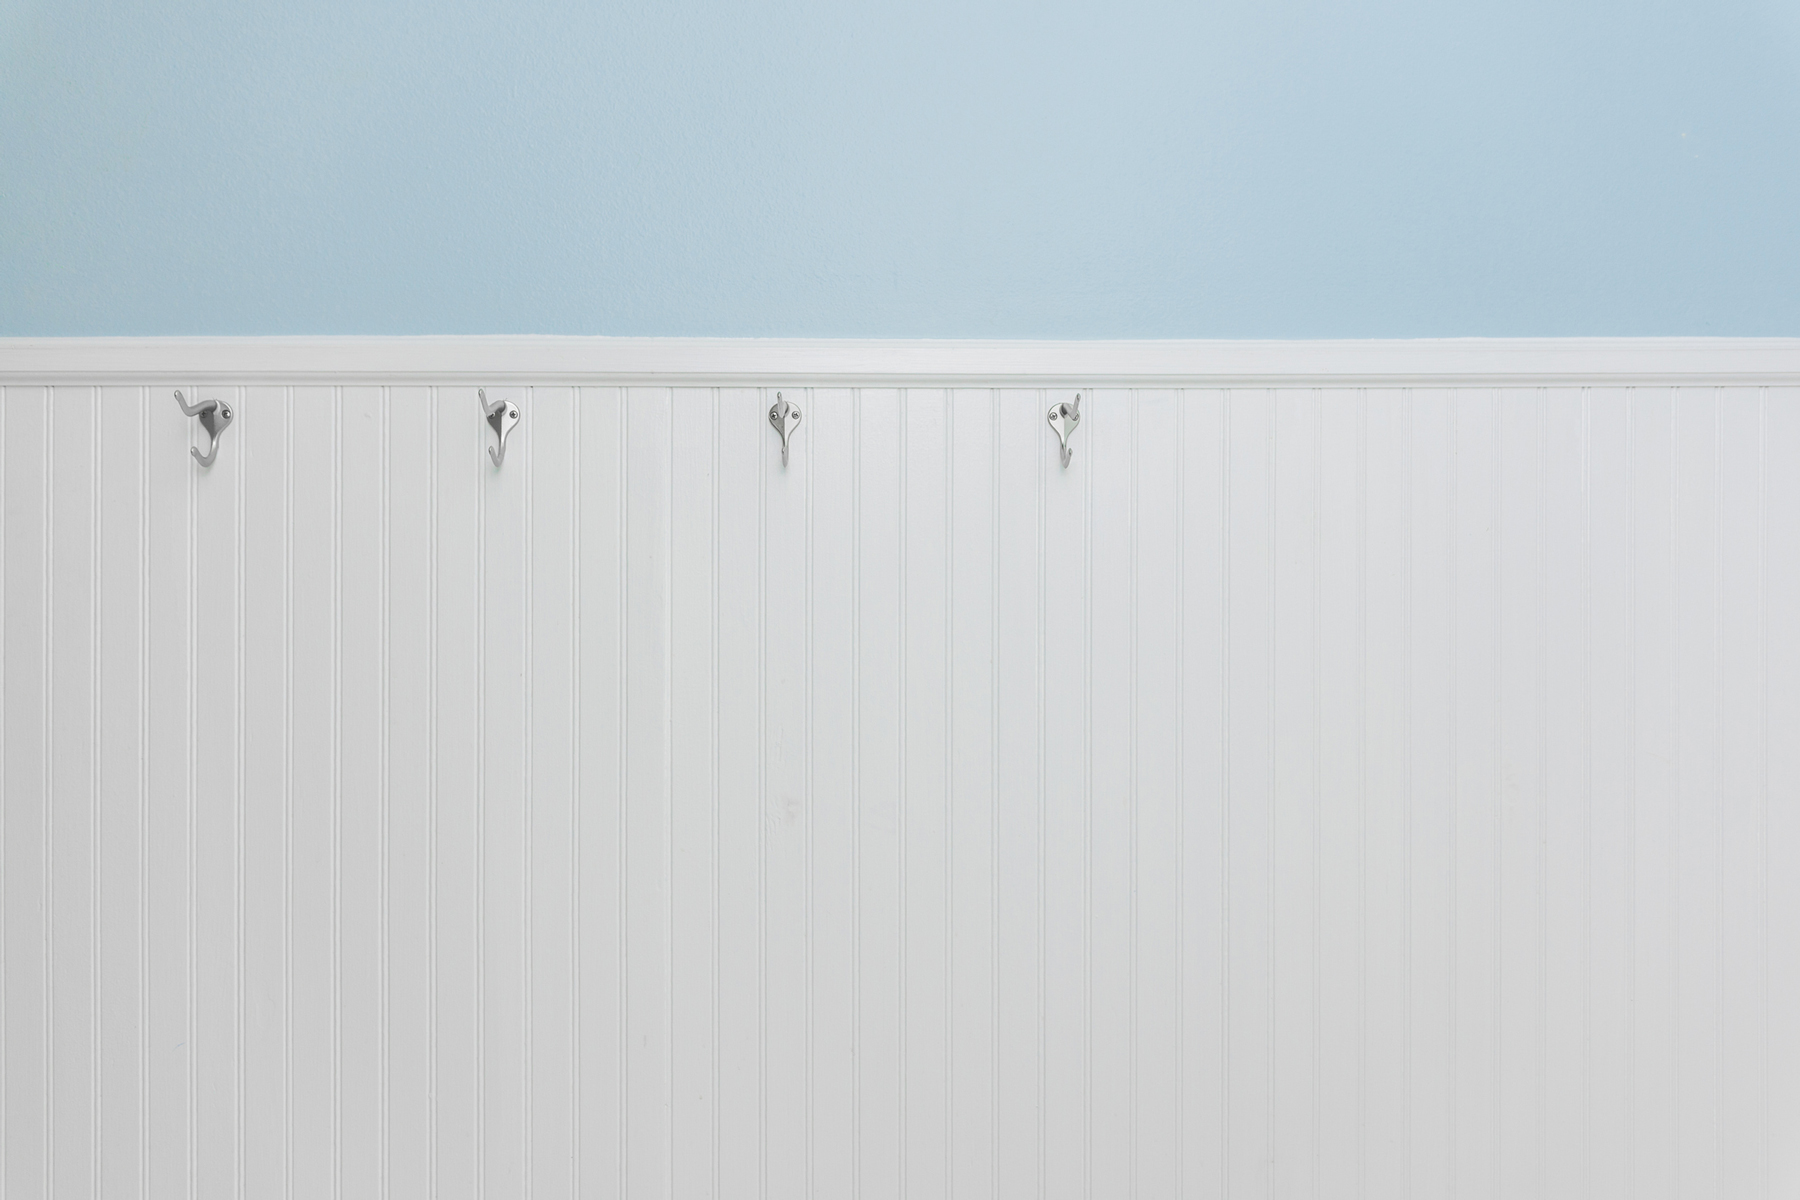 Beadboard paneling and wainscoting in a bathroom